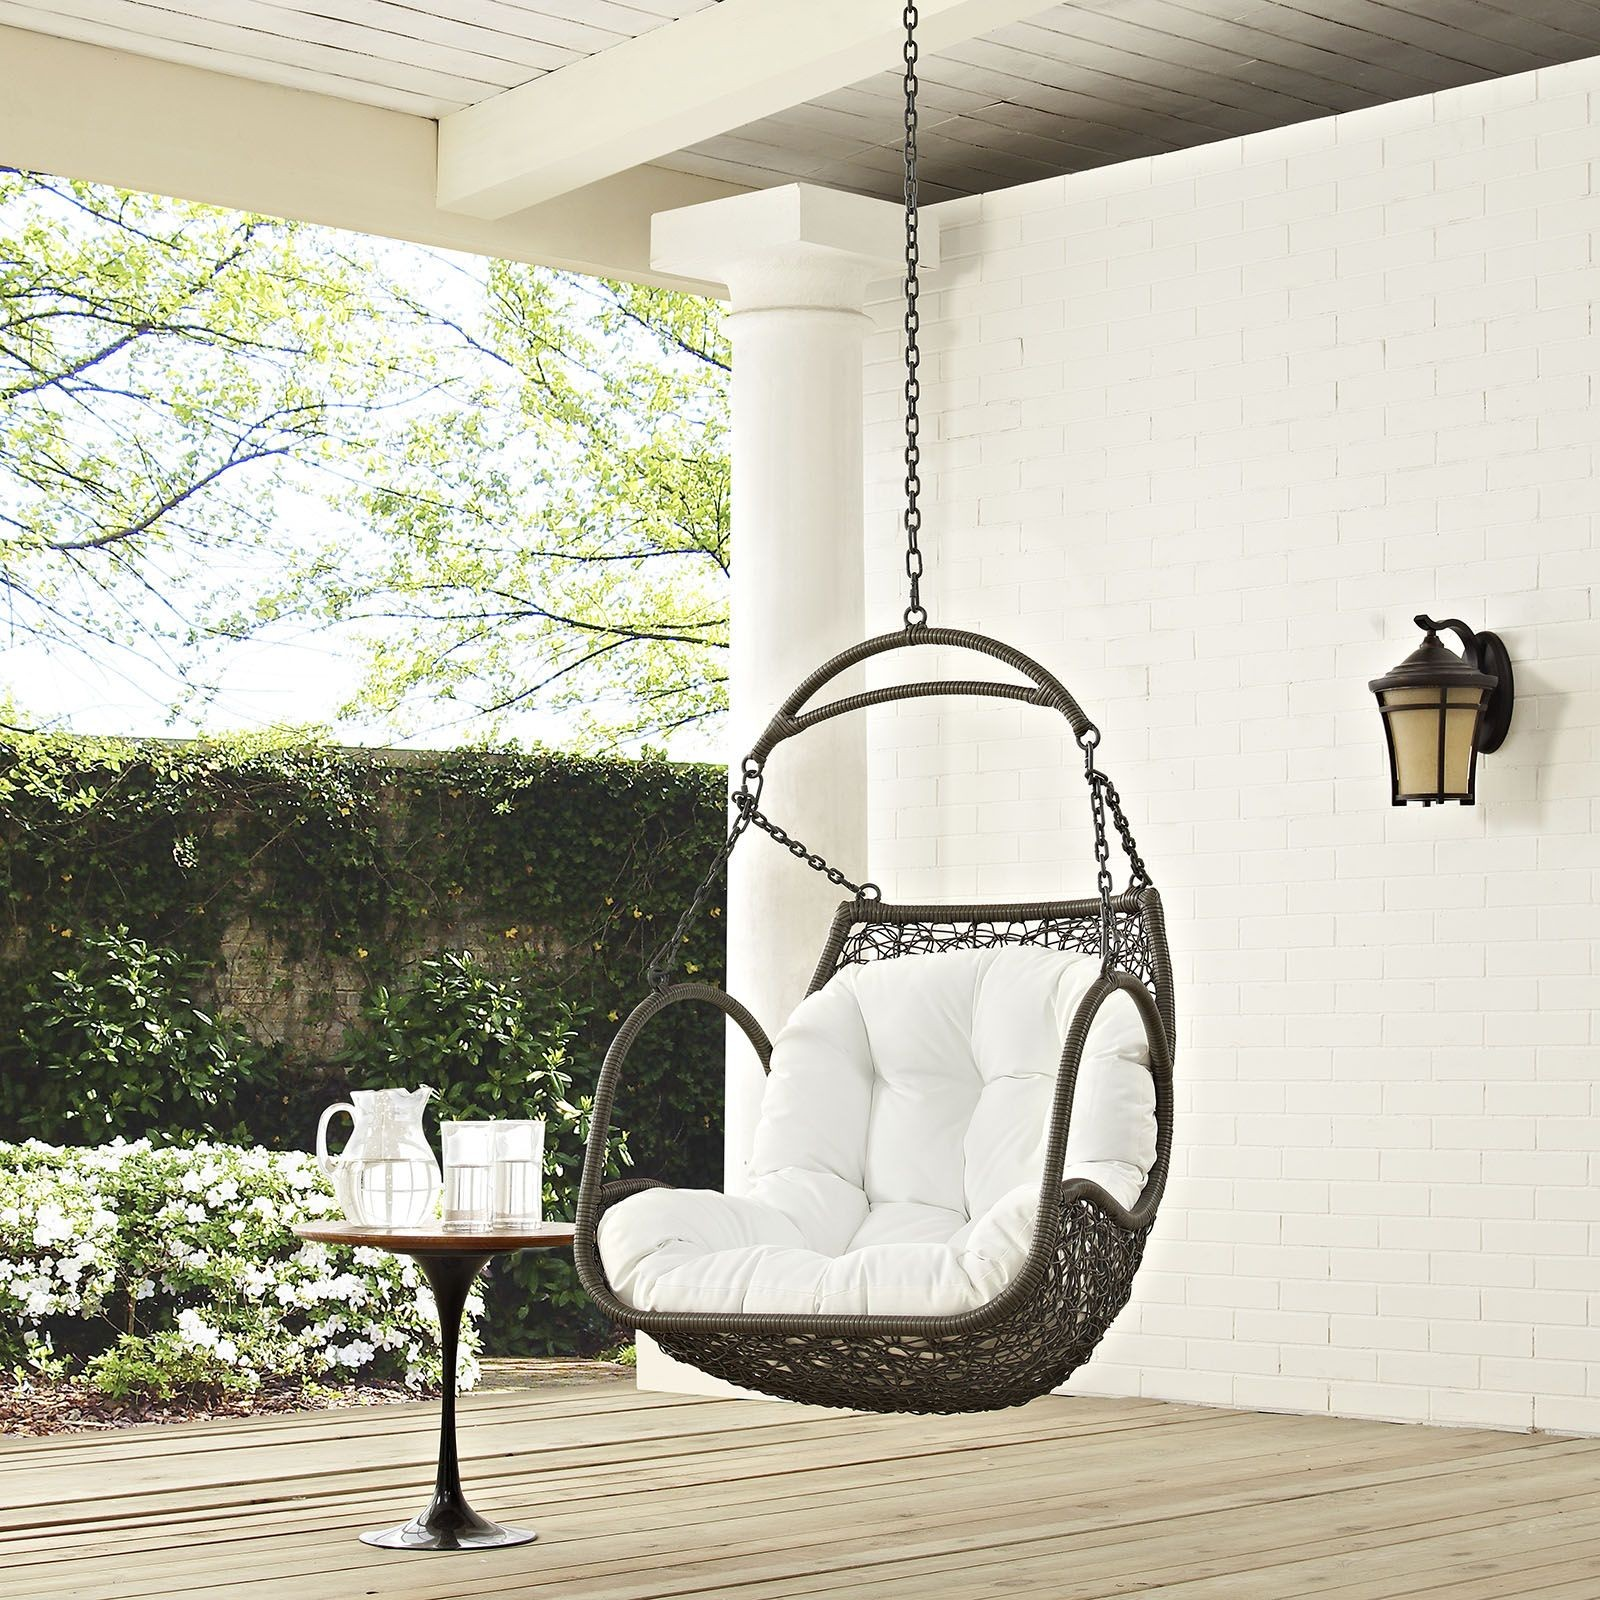 Arbor white outdoor patio swing chair without stand eei for White porch swing with stand